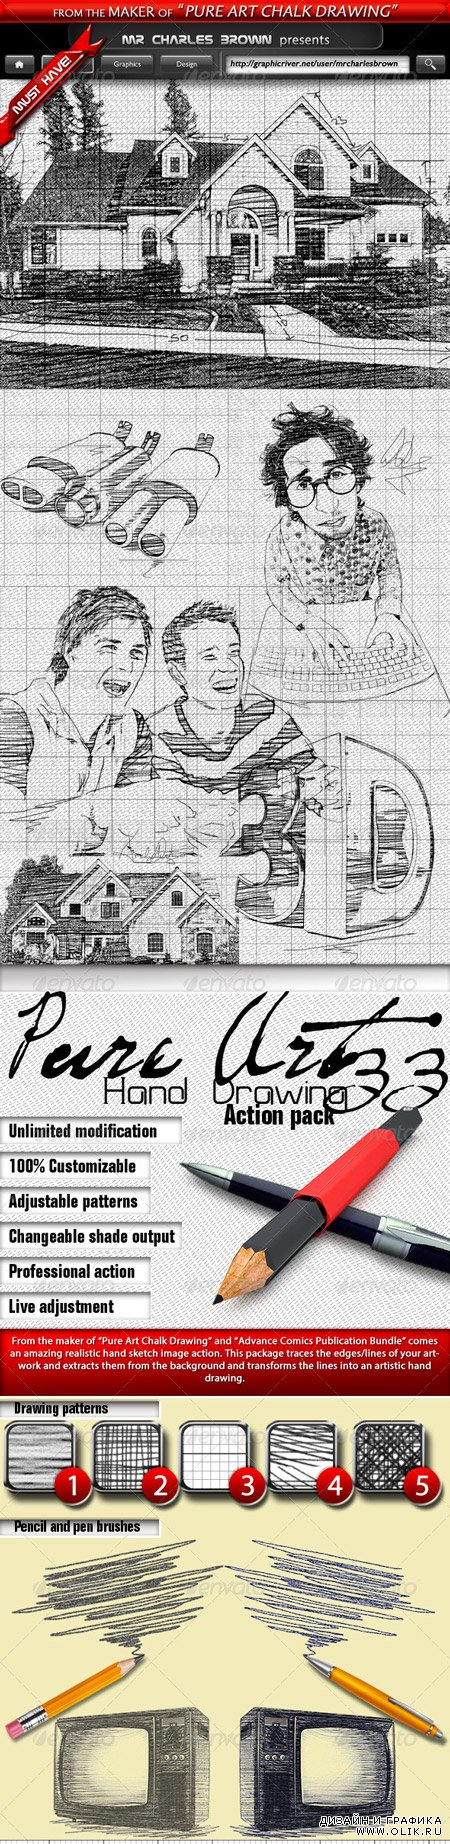 Pure Art Hand Drawing 33 – Italian Architect Art